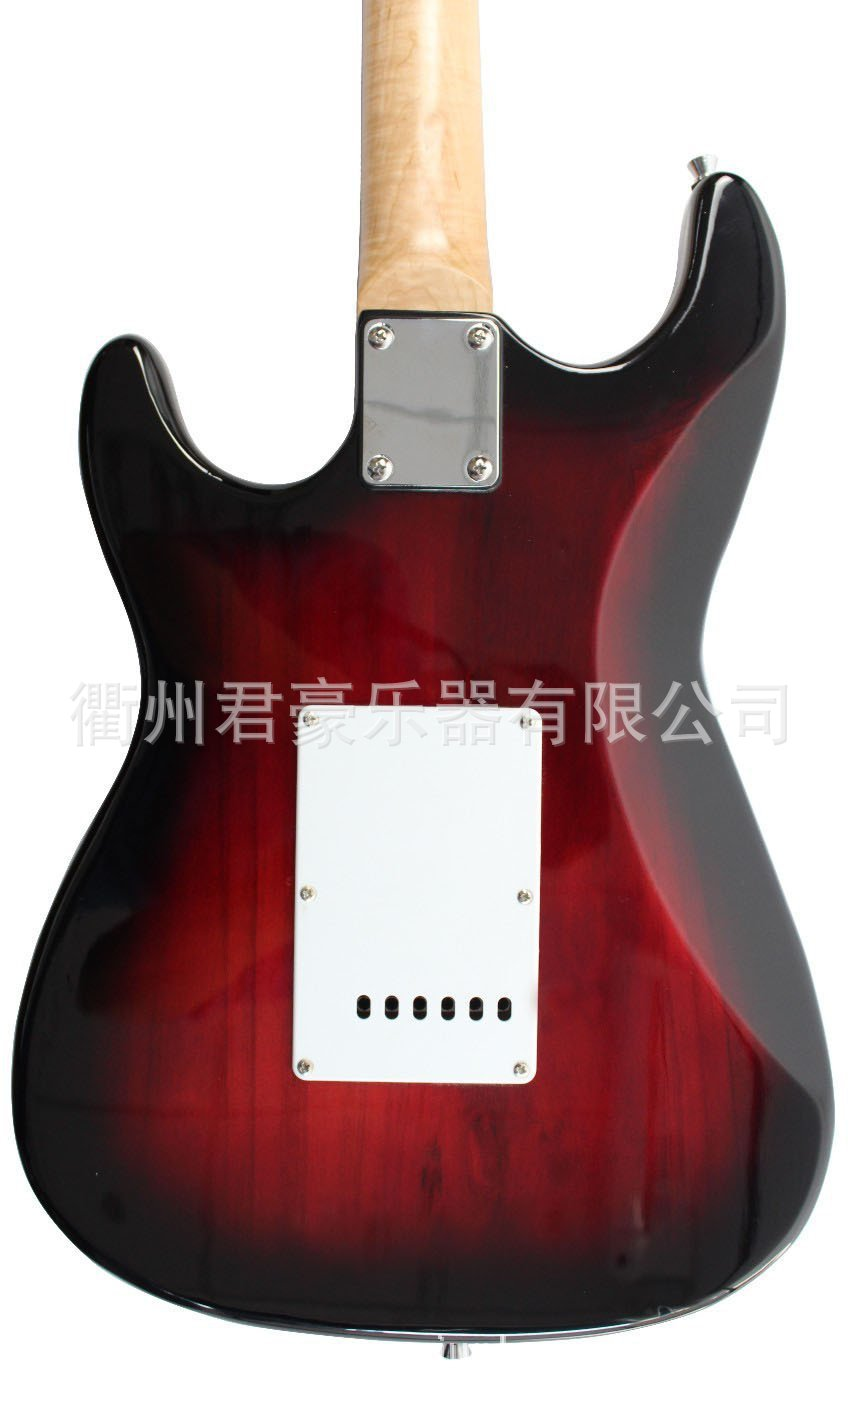 Red Gifts Electric Guitar Wood Bridge Body Solid Rosewood Electric Guitars High Quality Violao Acustico Instruments DL6DJT enlarge